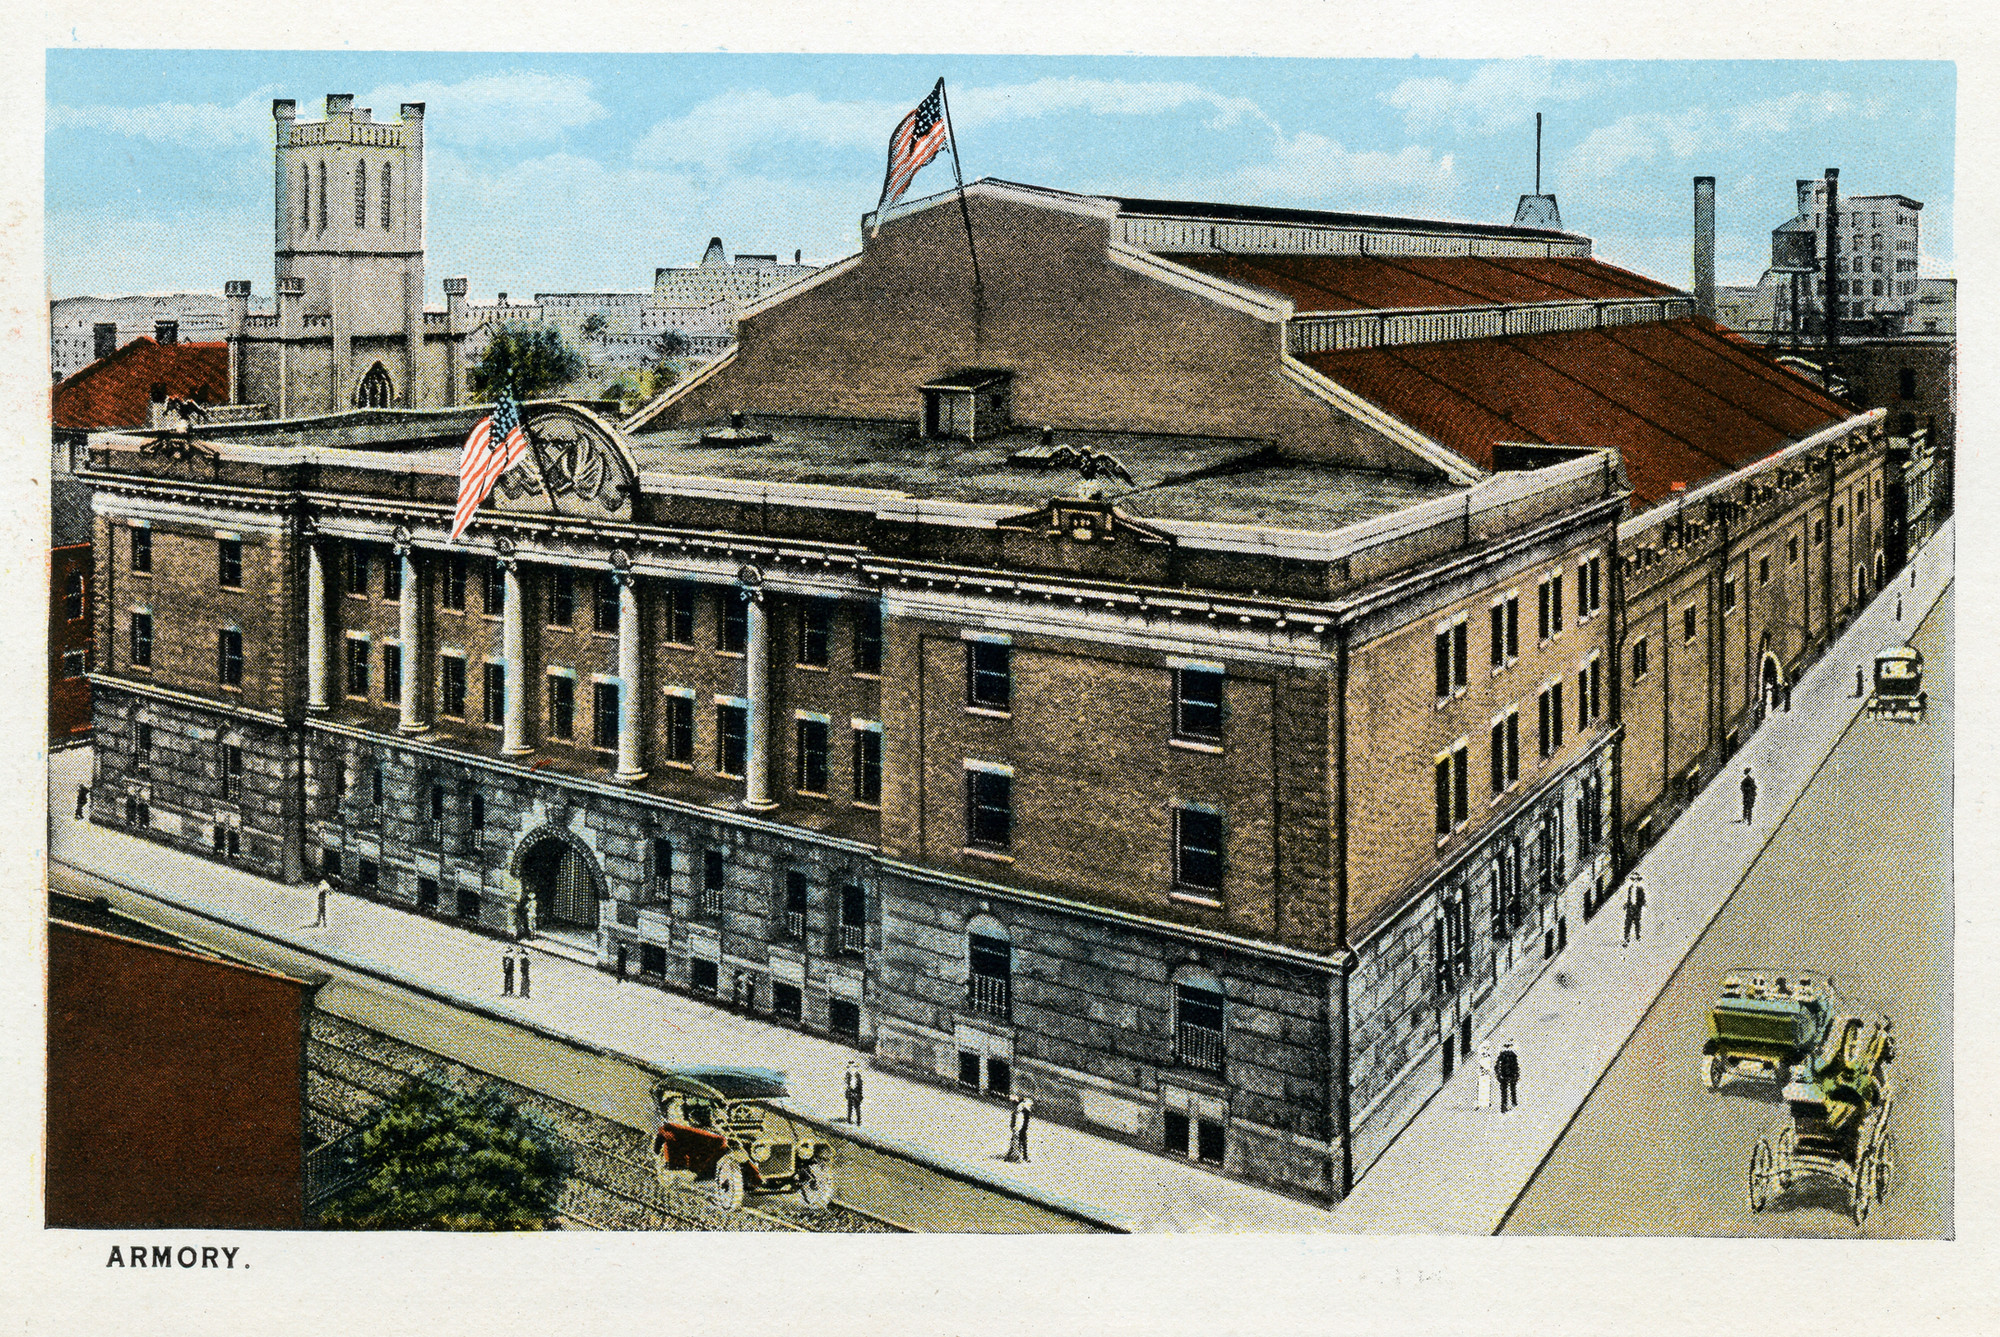 Reviving Vacant Buildings: A Tale of Two Cities, The Louisville Gardens in the early 1900s when it was the Jefferson County Armory. Image © Diane Deaton Street via Flickr